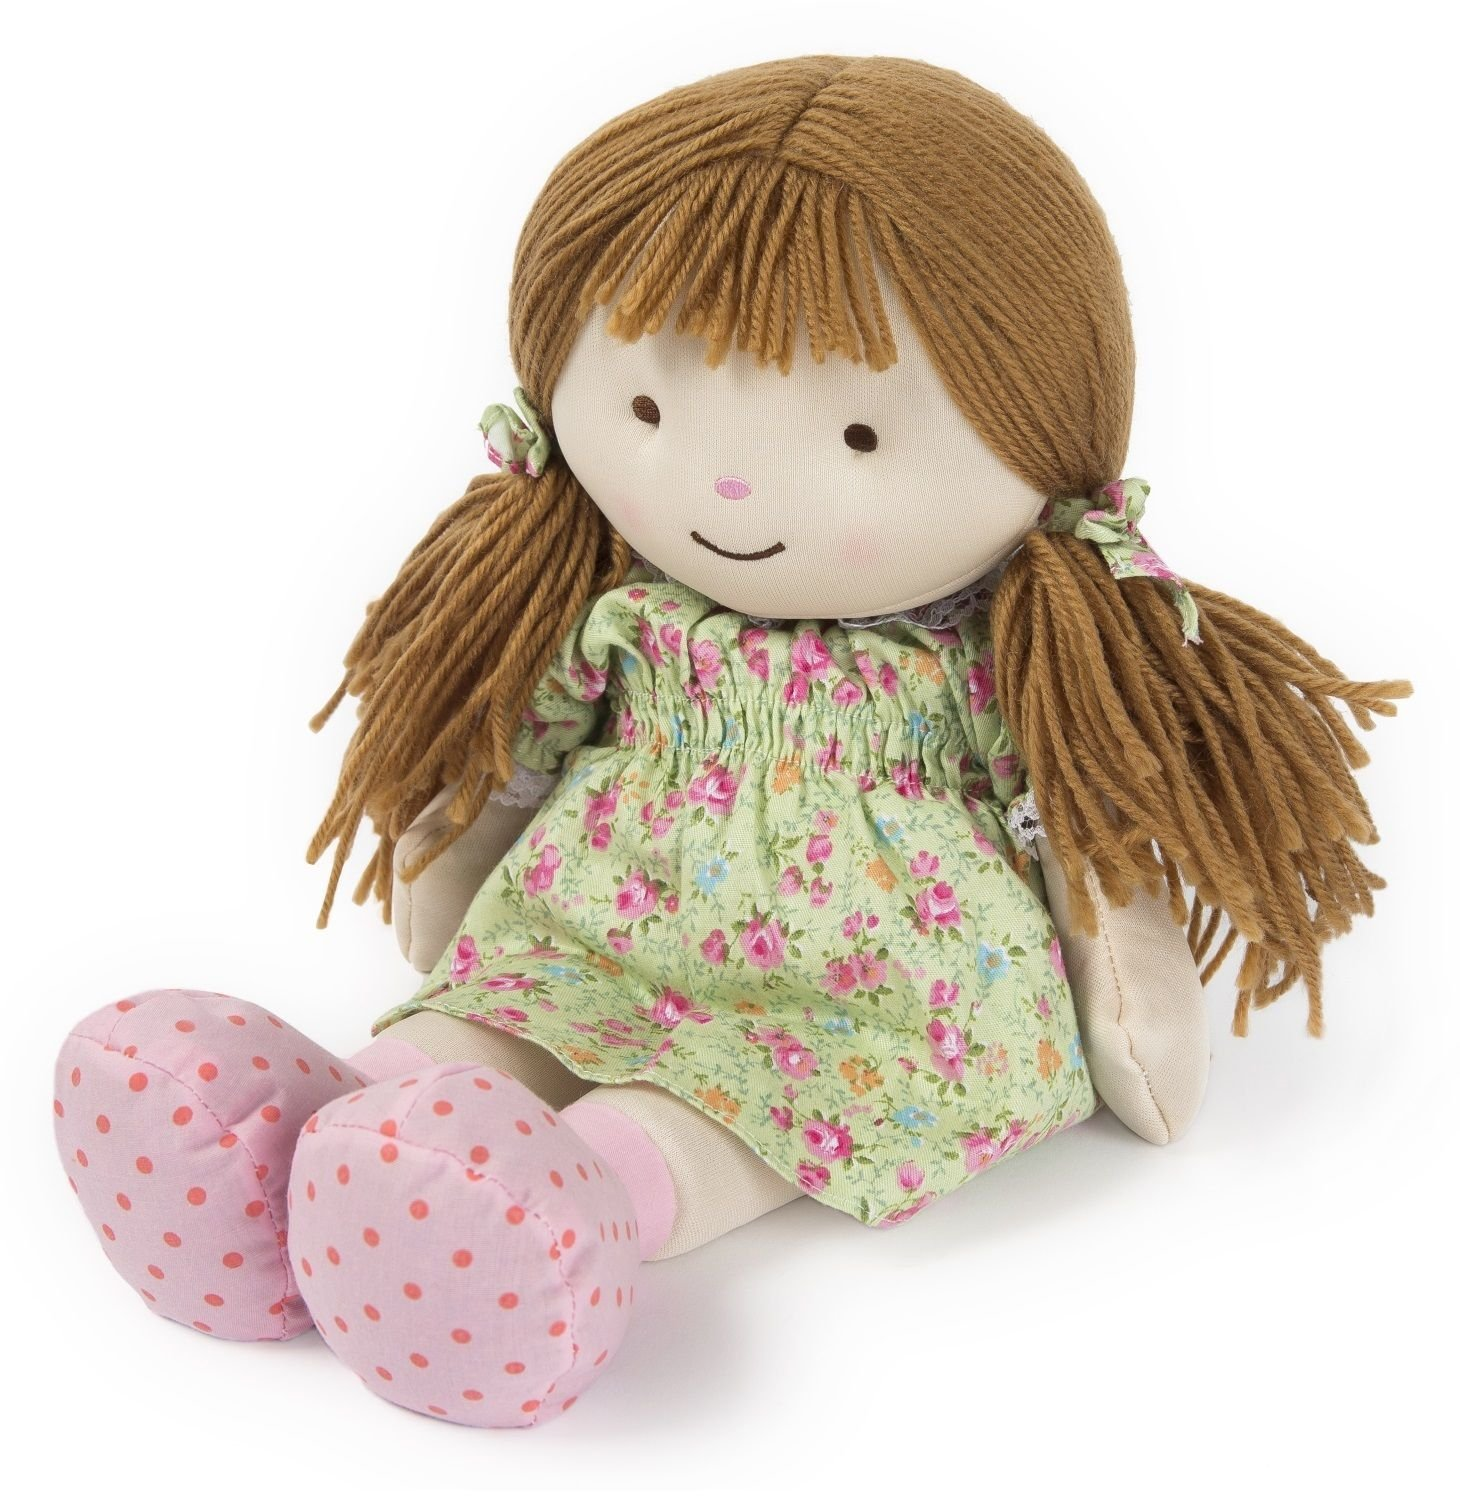 Amazon.com: Intelex Warmheart Rag Doll, Ellie: Health & Personal Care